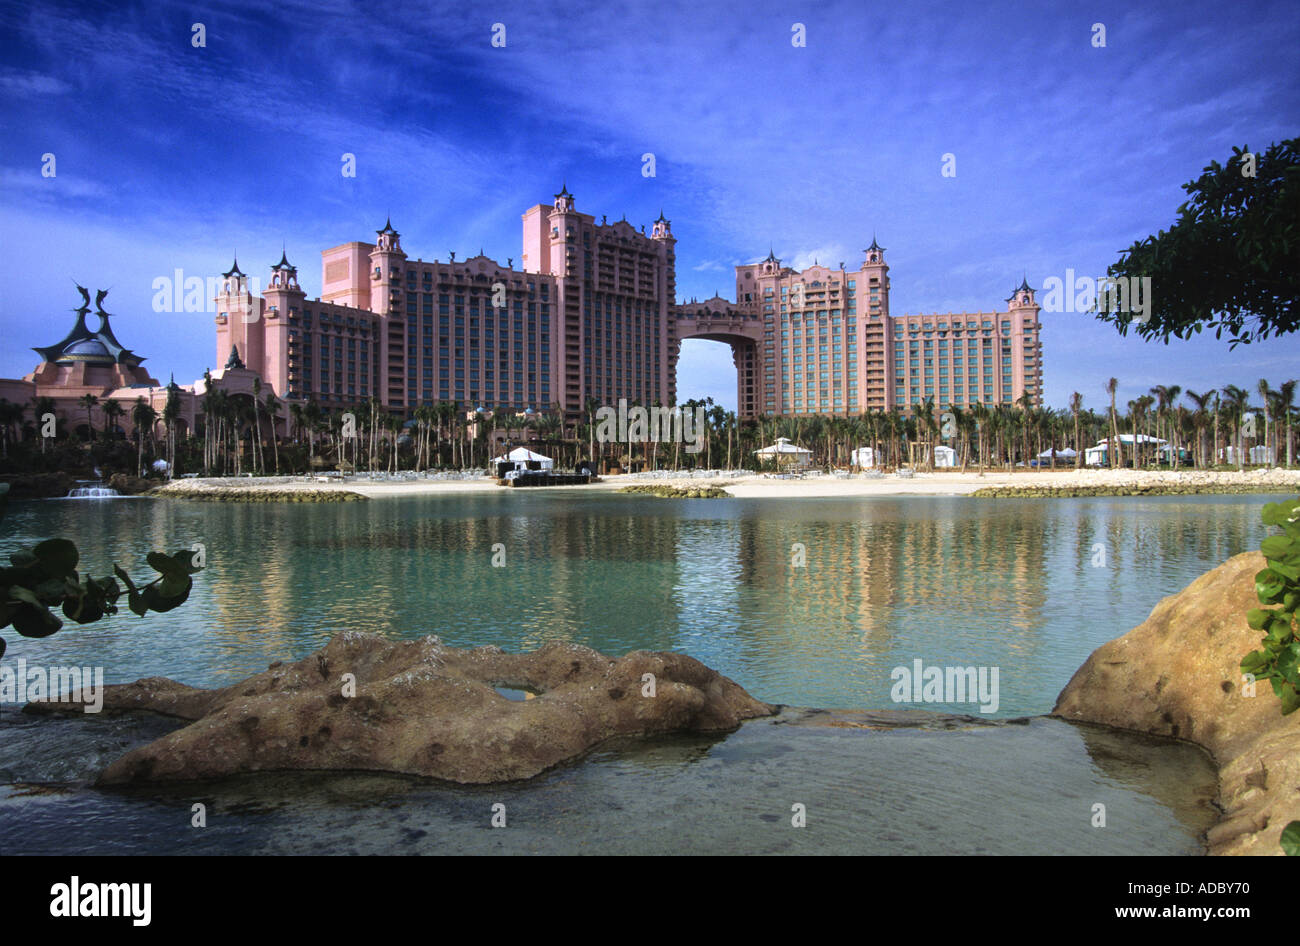 THE ATLANTIS HOTEL AND PARADISE ISLAND RESORT IN NASSAU BAHAMAS - Stock Image